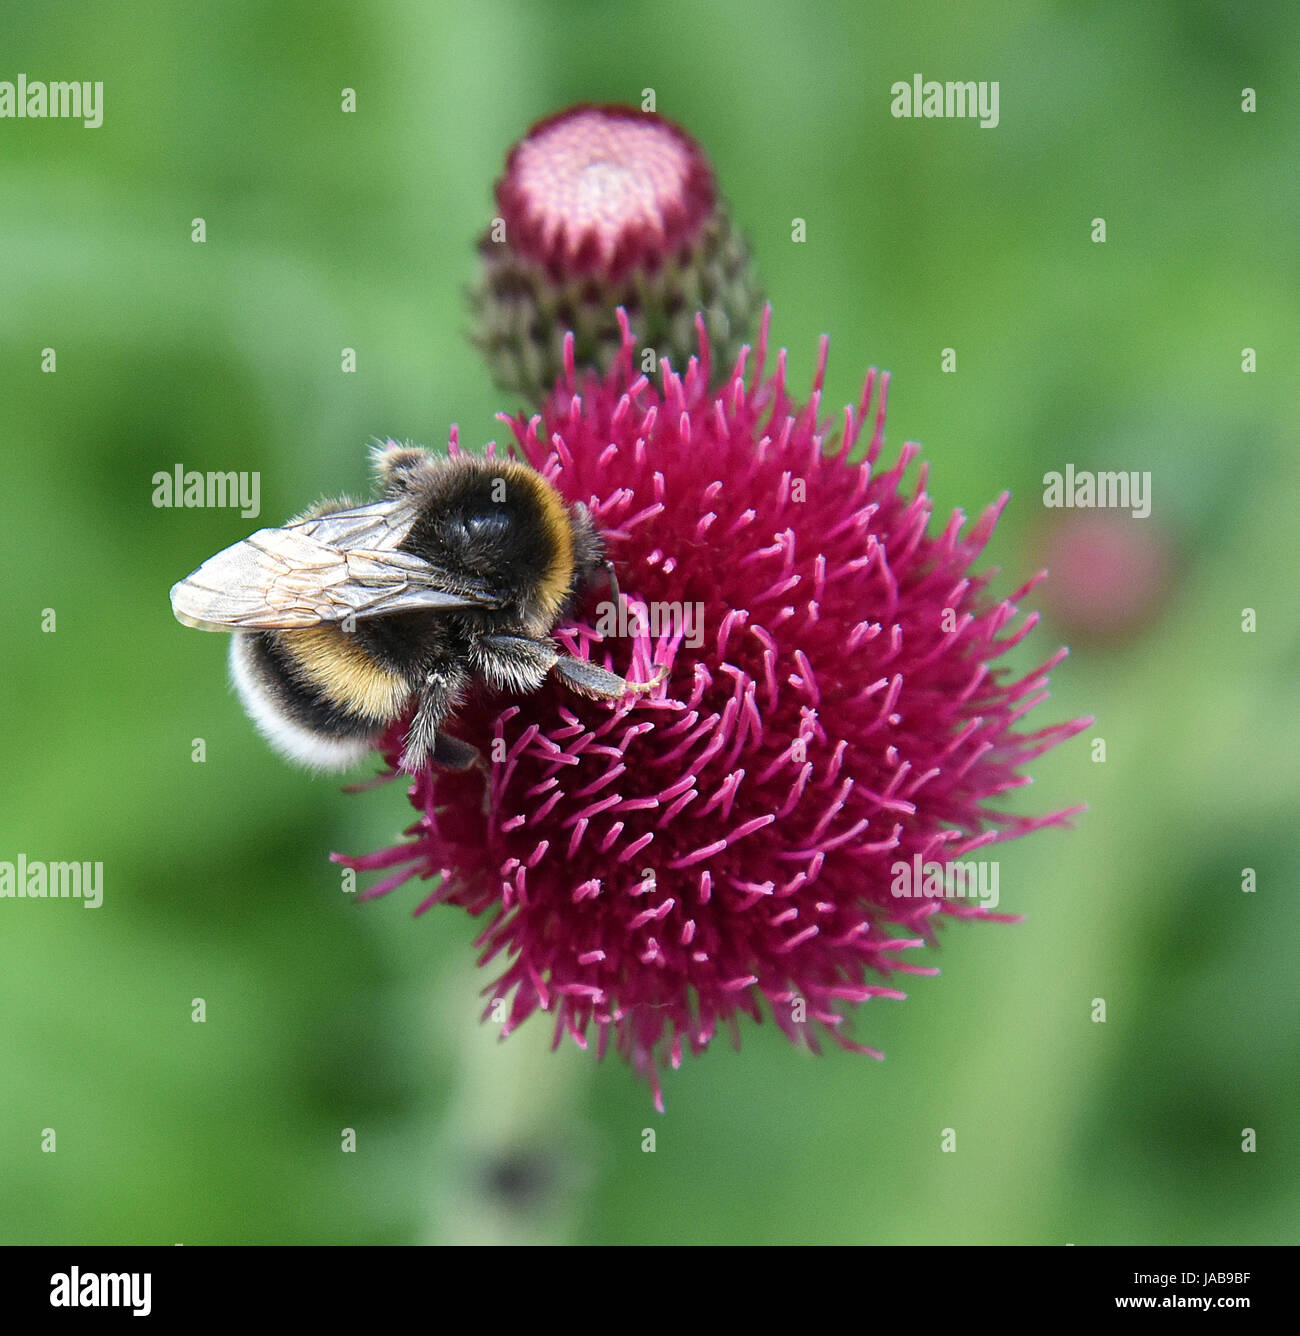 Macro of a Yellow black and grey bumblebee (Bombus Terristris) feeding on a Red Plume Thistle 'Atropurpureum' - Stock Image